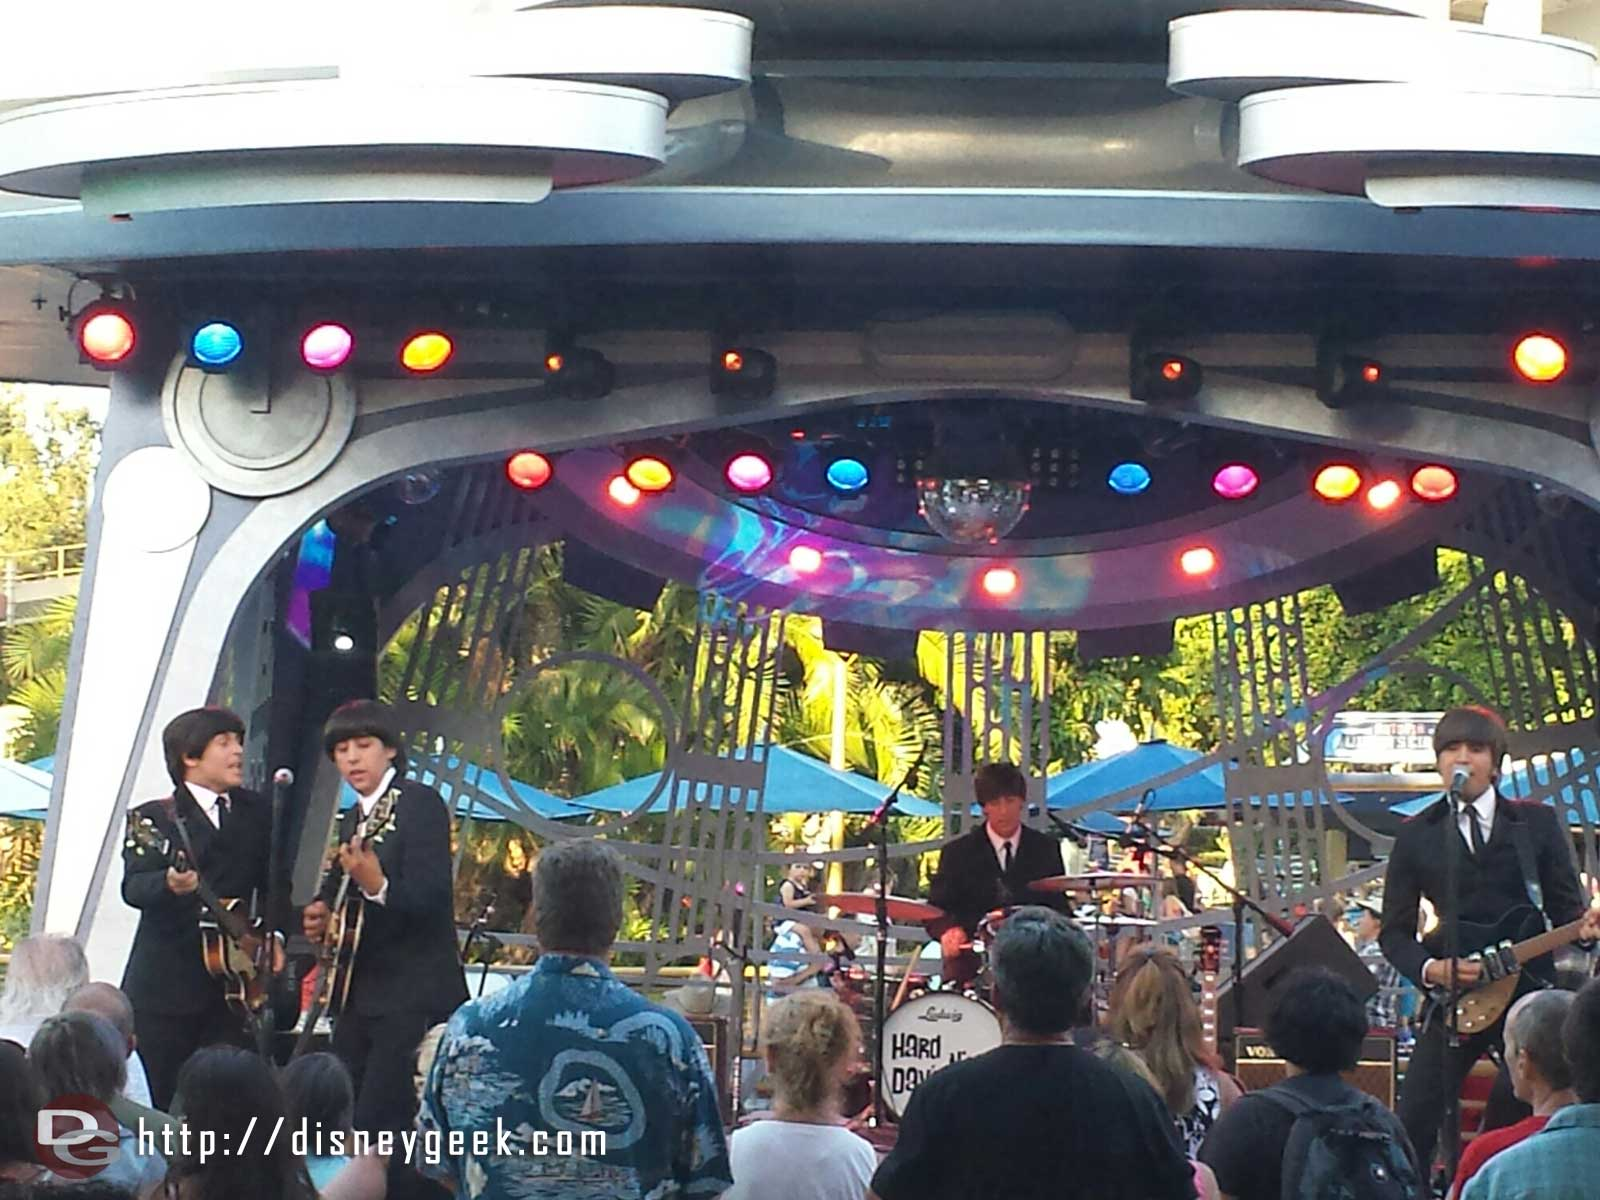 Hard Days Night a tribute to the Beatles are performing at Tomorrowland Terrace tonight